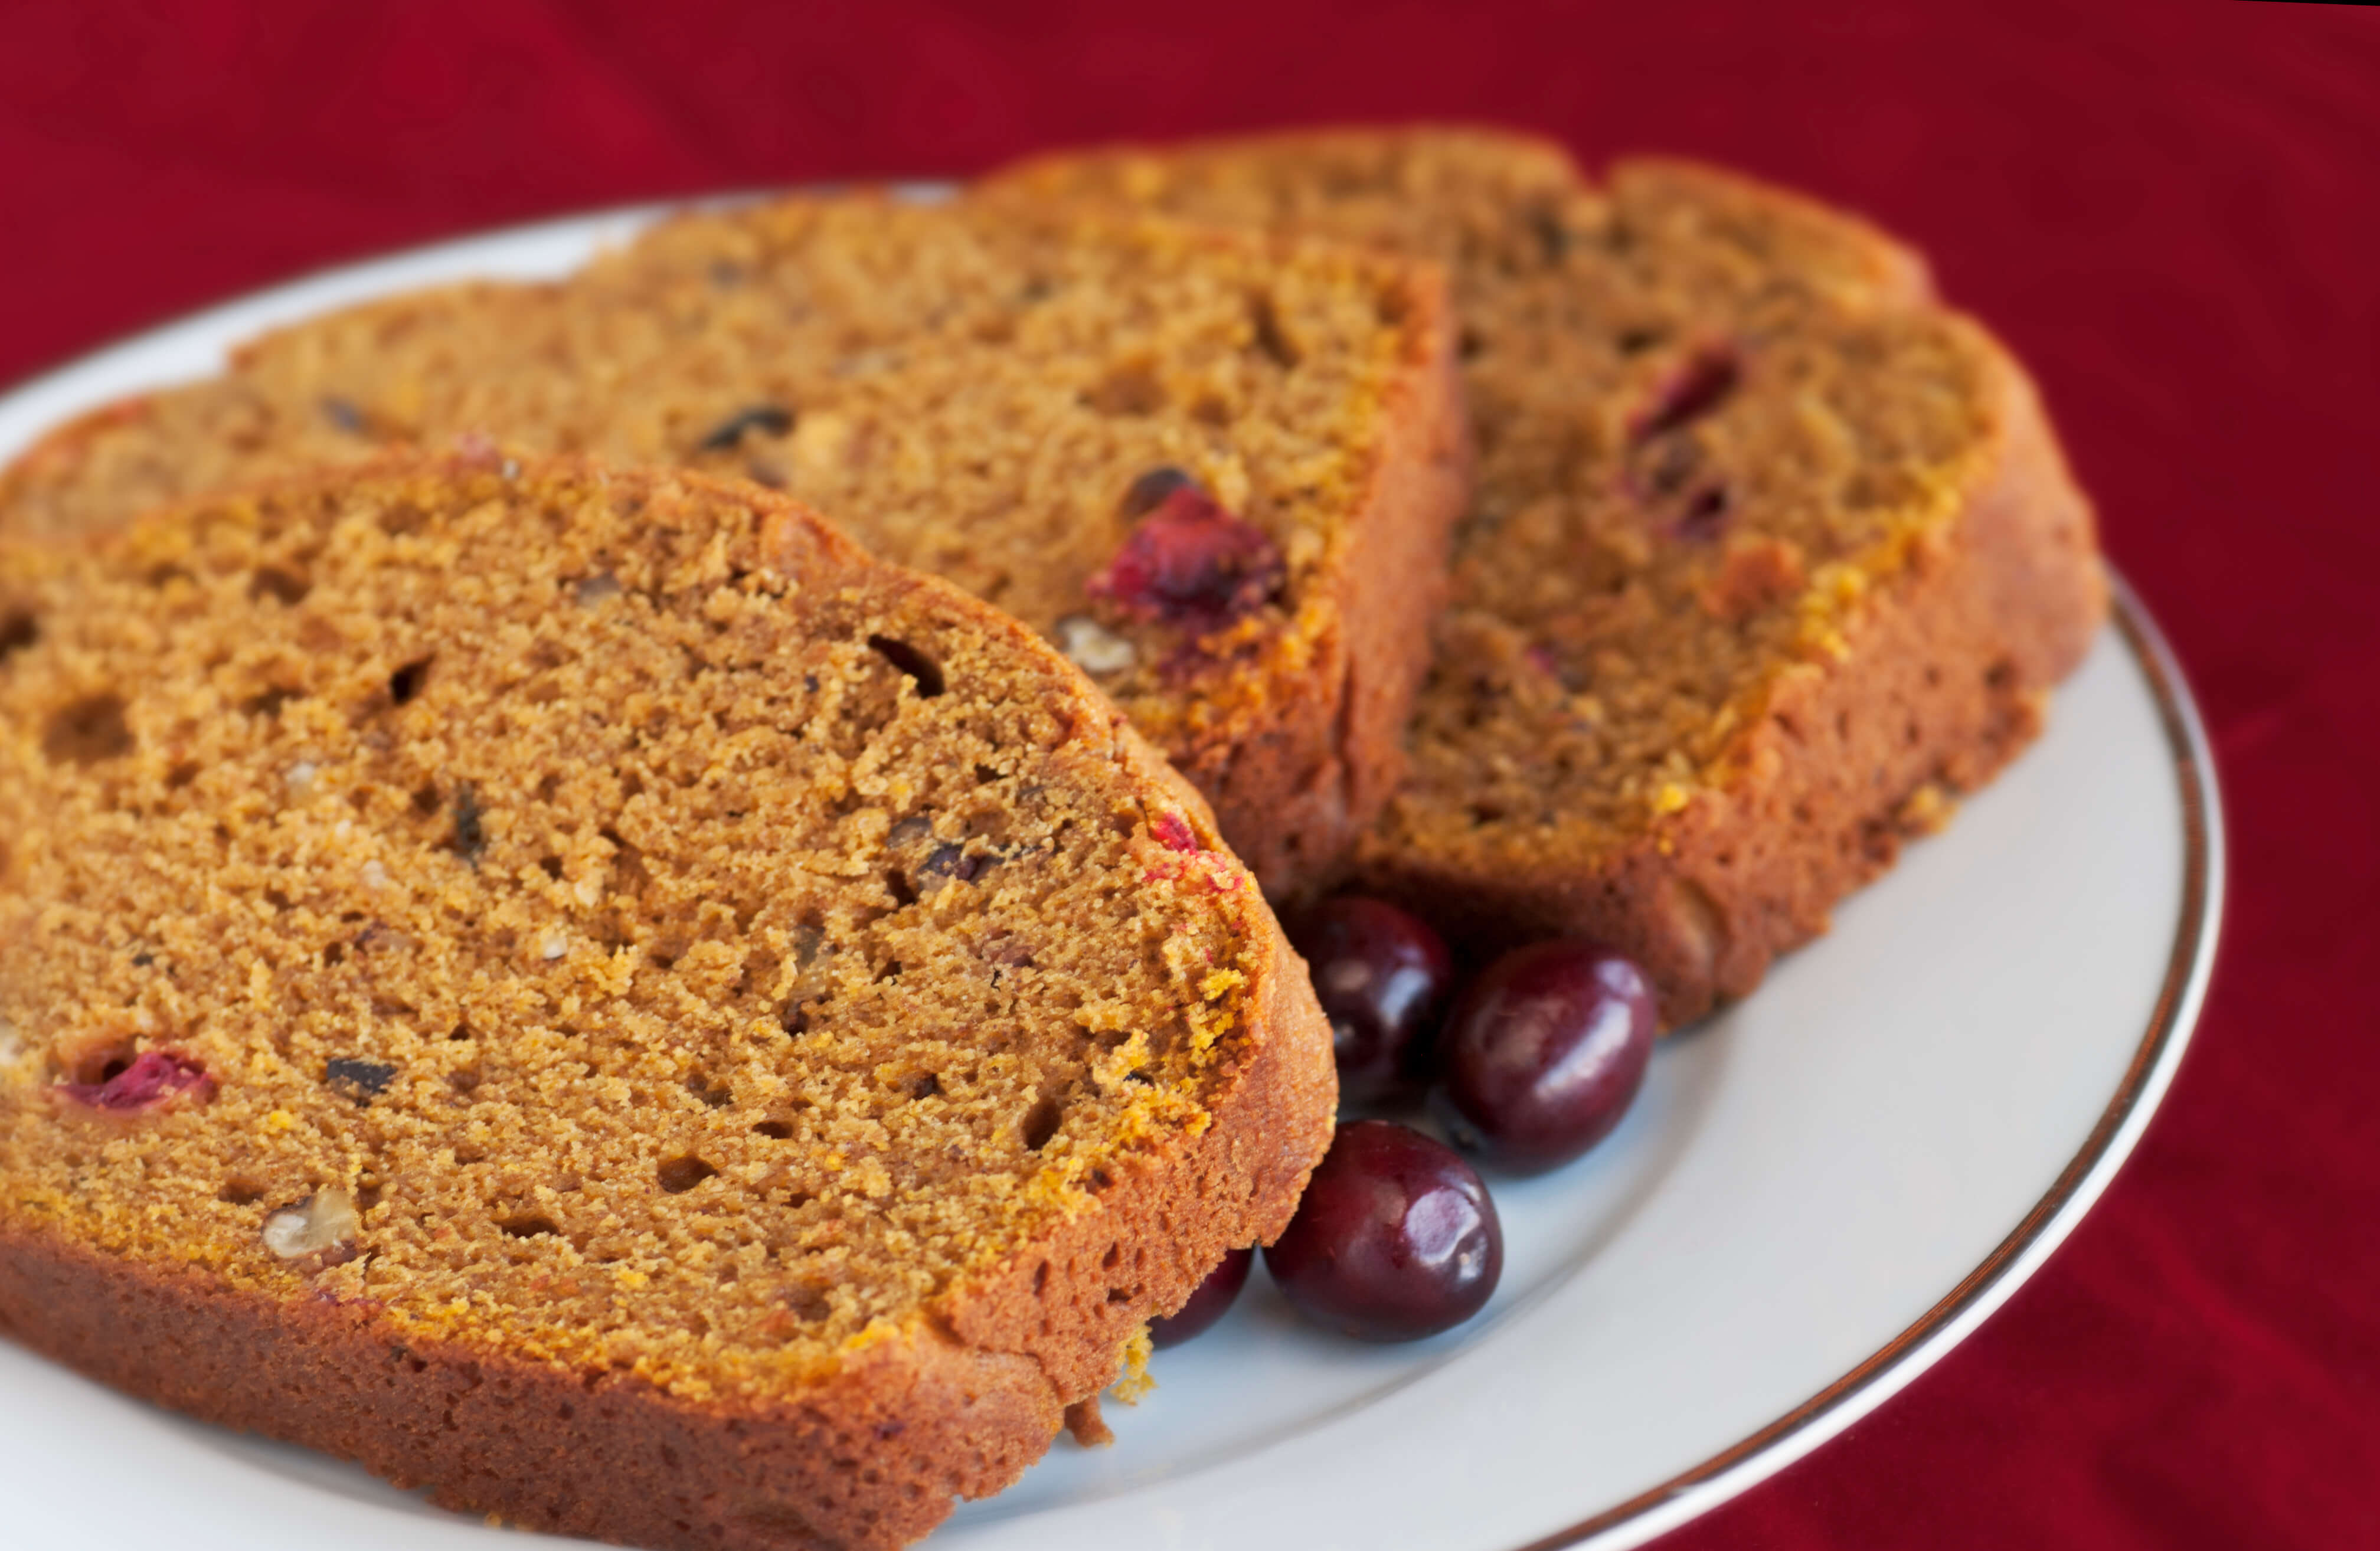 Slices of Pumpkin Bread on a plate.